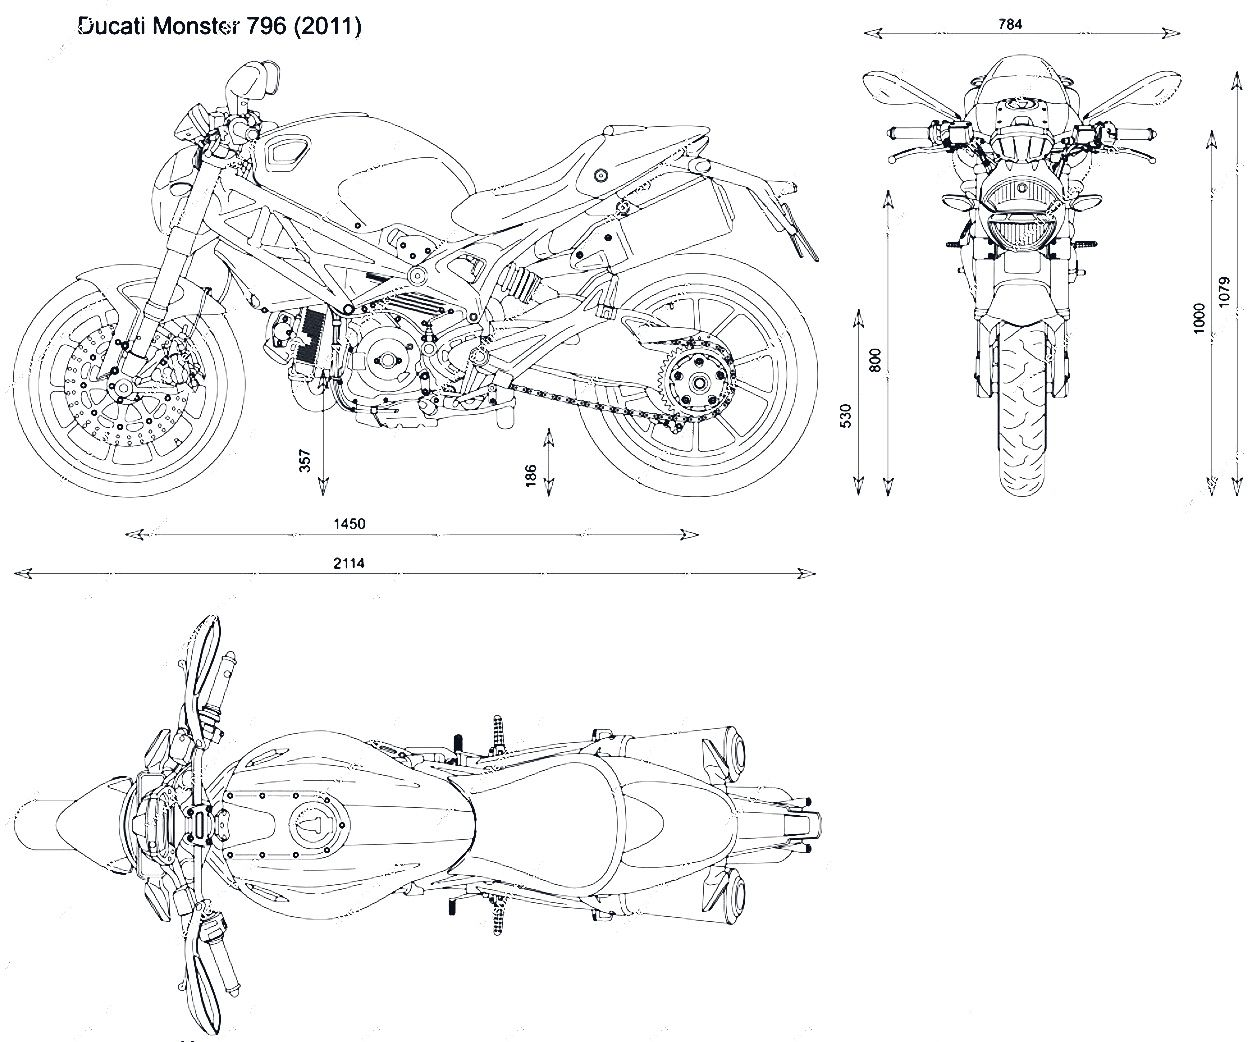 Ducati Monster 796 Blueprint Download Free Blueprint For